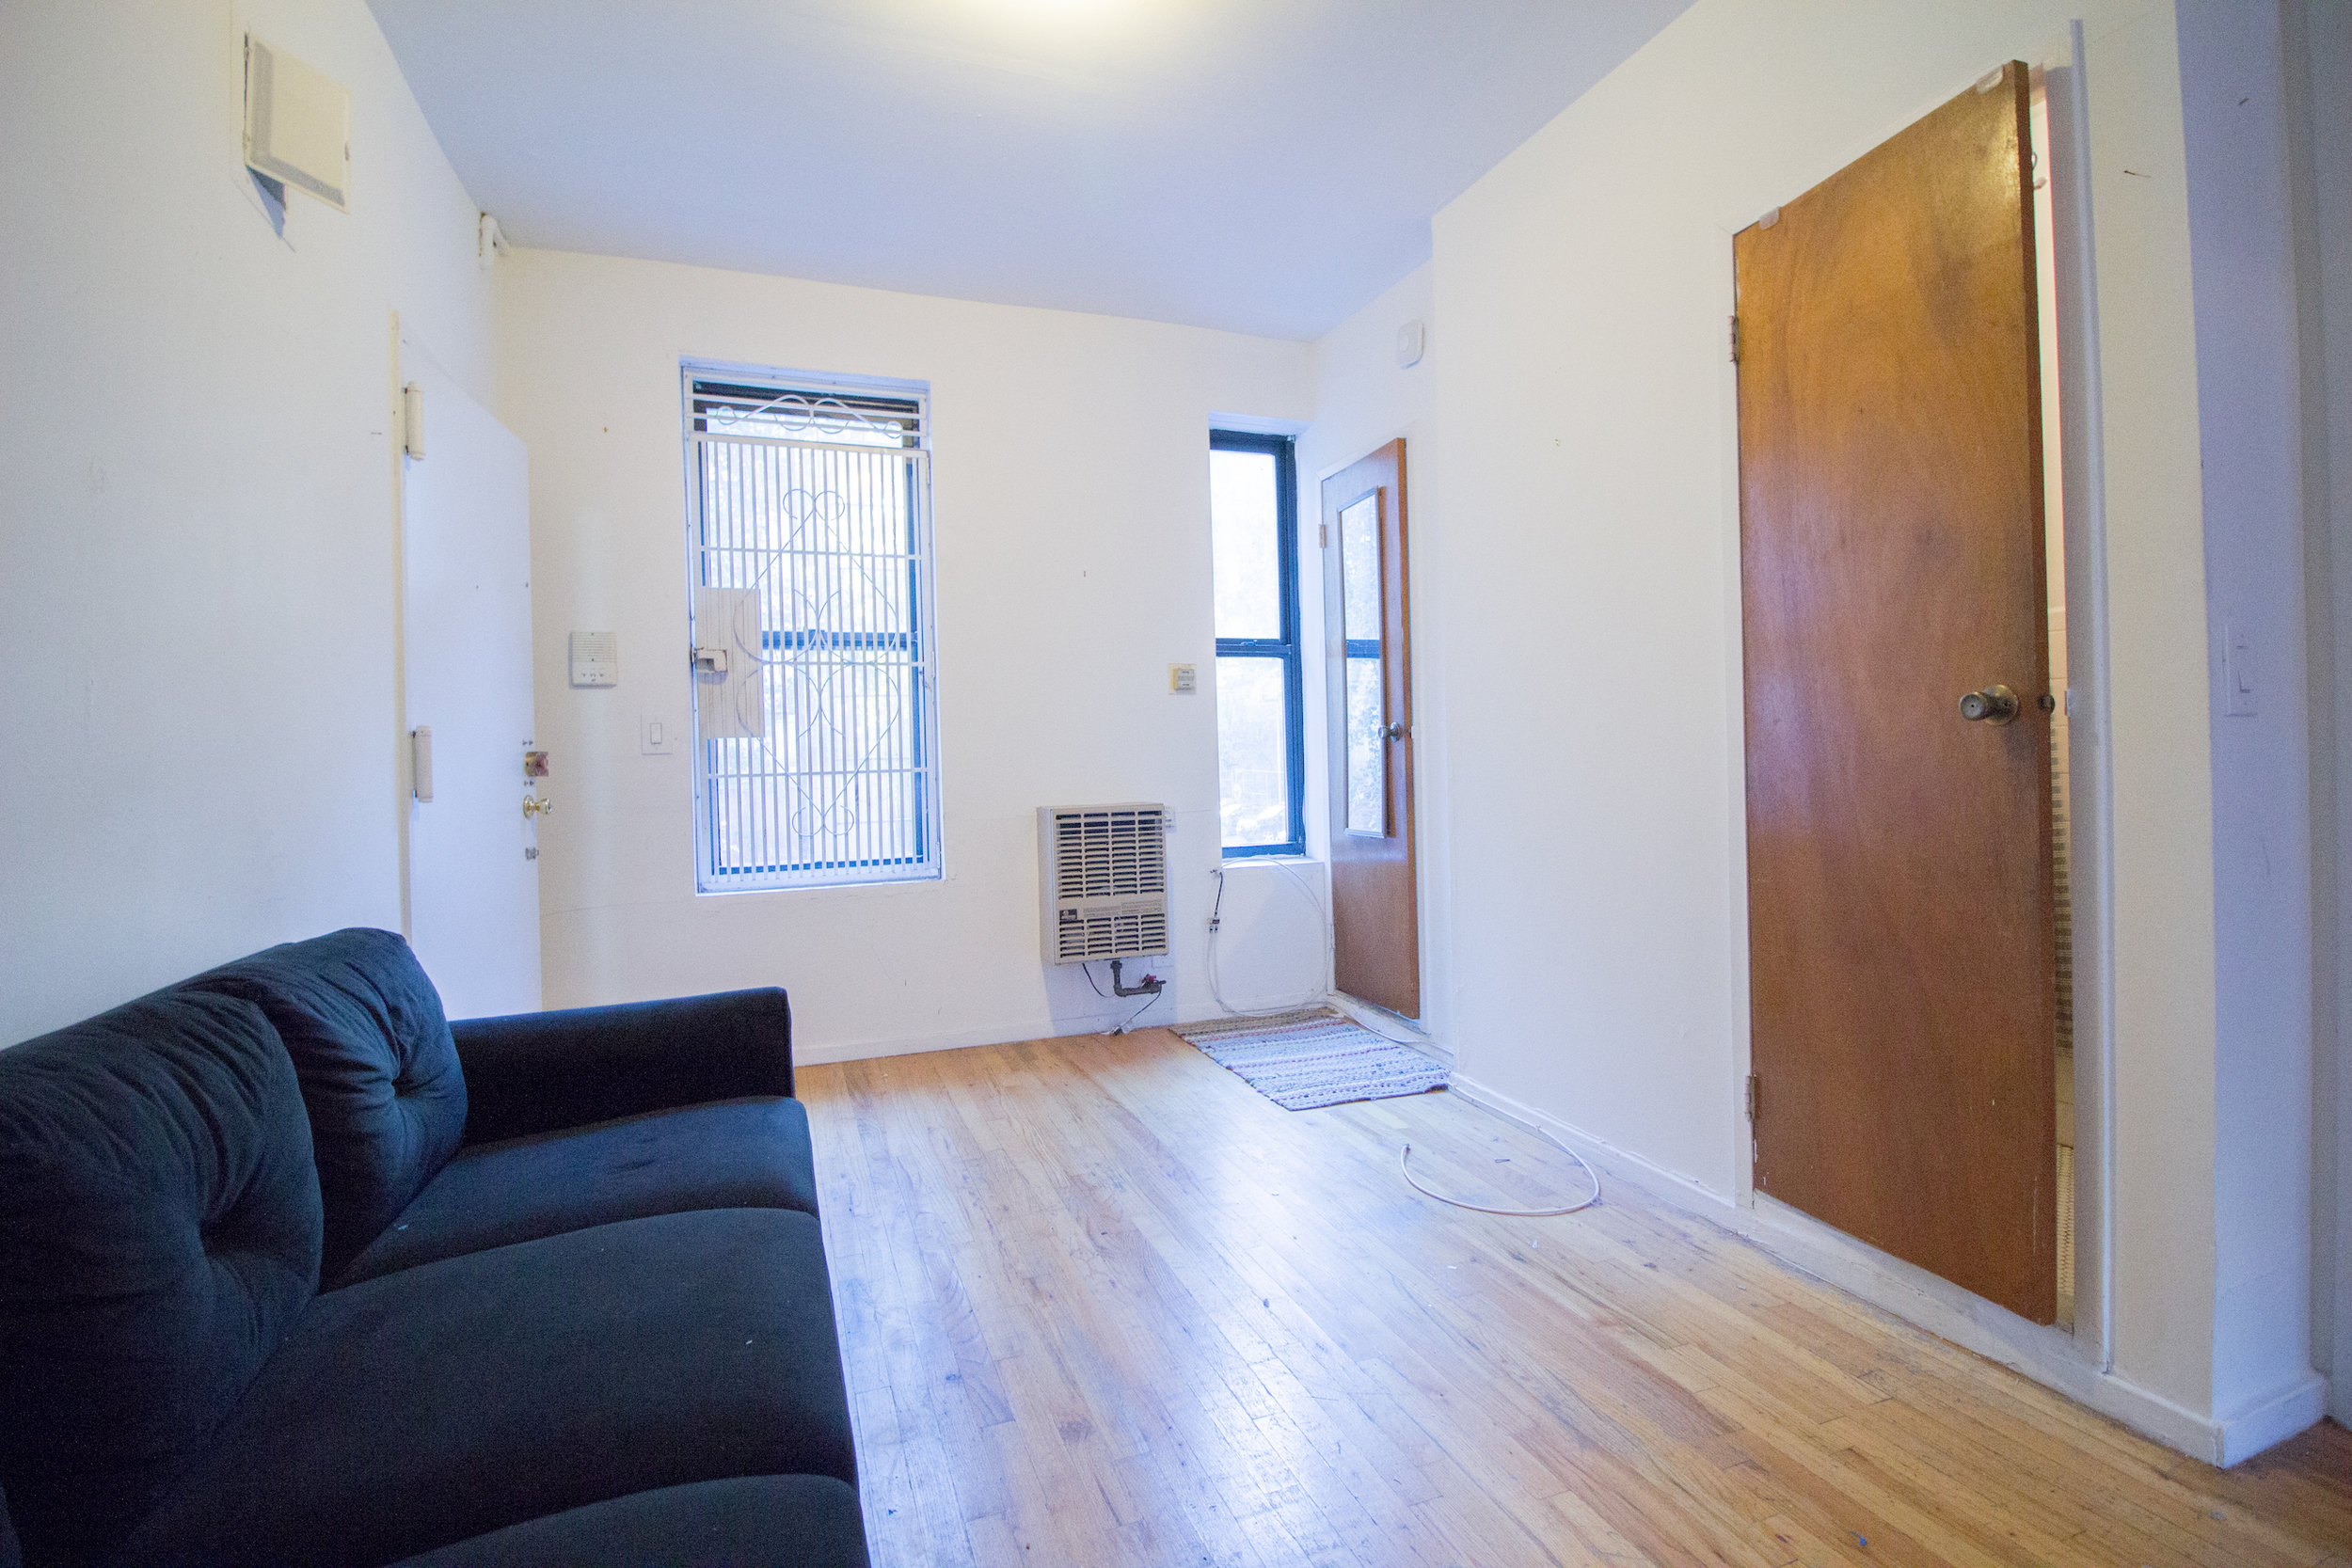 443 E 6 Street #2 - New Spacious Junior-4 in East Village!Good deal for a bright apartment with separate windowed kitchen, spacious sleeping area as well as a large living space, hardwood floors throughout and deco fireplace with exposed brick for a charm! Located just one flight up the stairs in a walk up building right on a tree line street in East Village, steps away from major restaurants, stores, entertainment, parks and several subway lines. Rent: $1,950 /monthTerms: 12 - 12 MonthsAvailable: Immediate